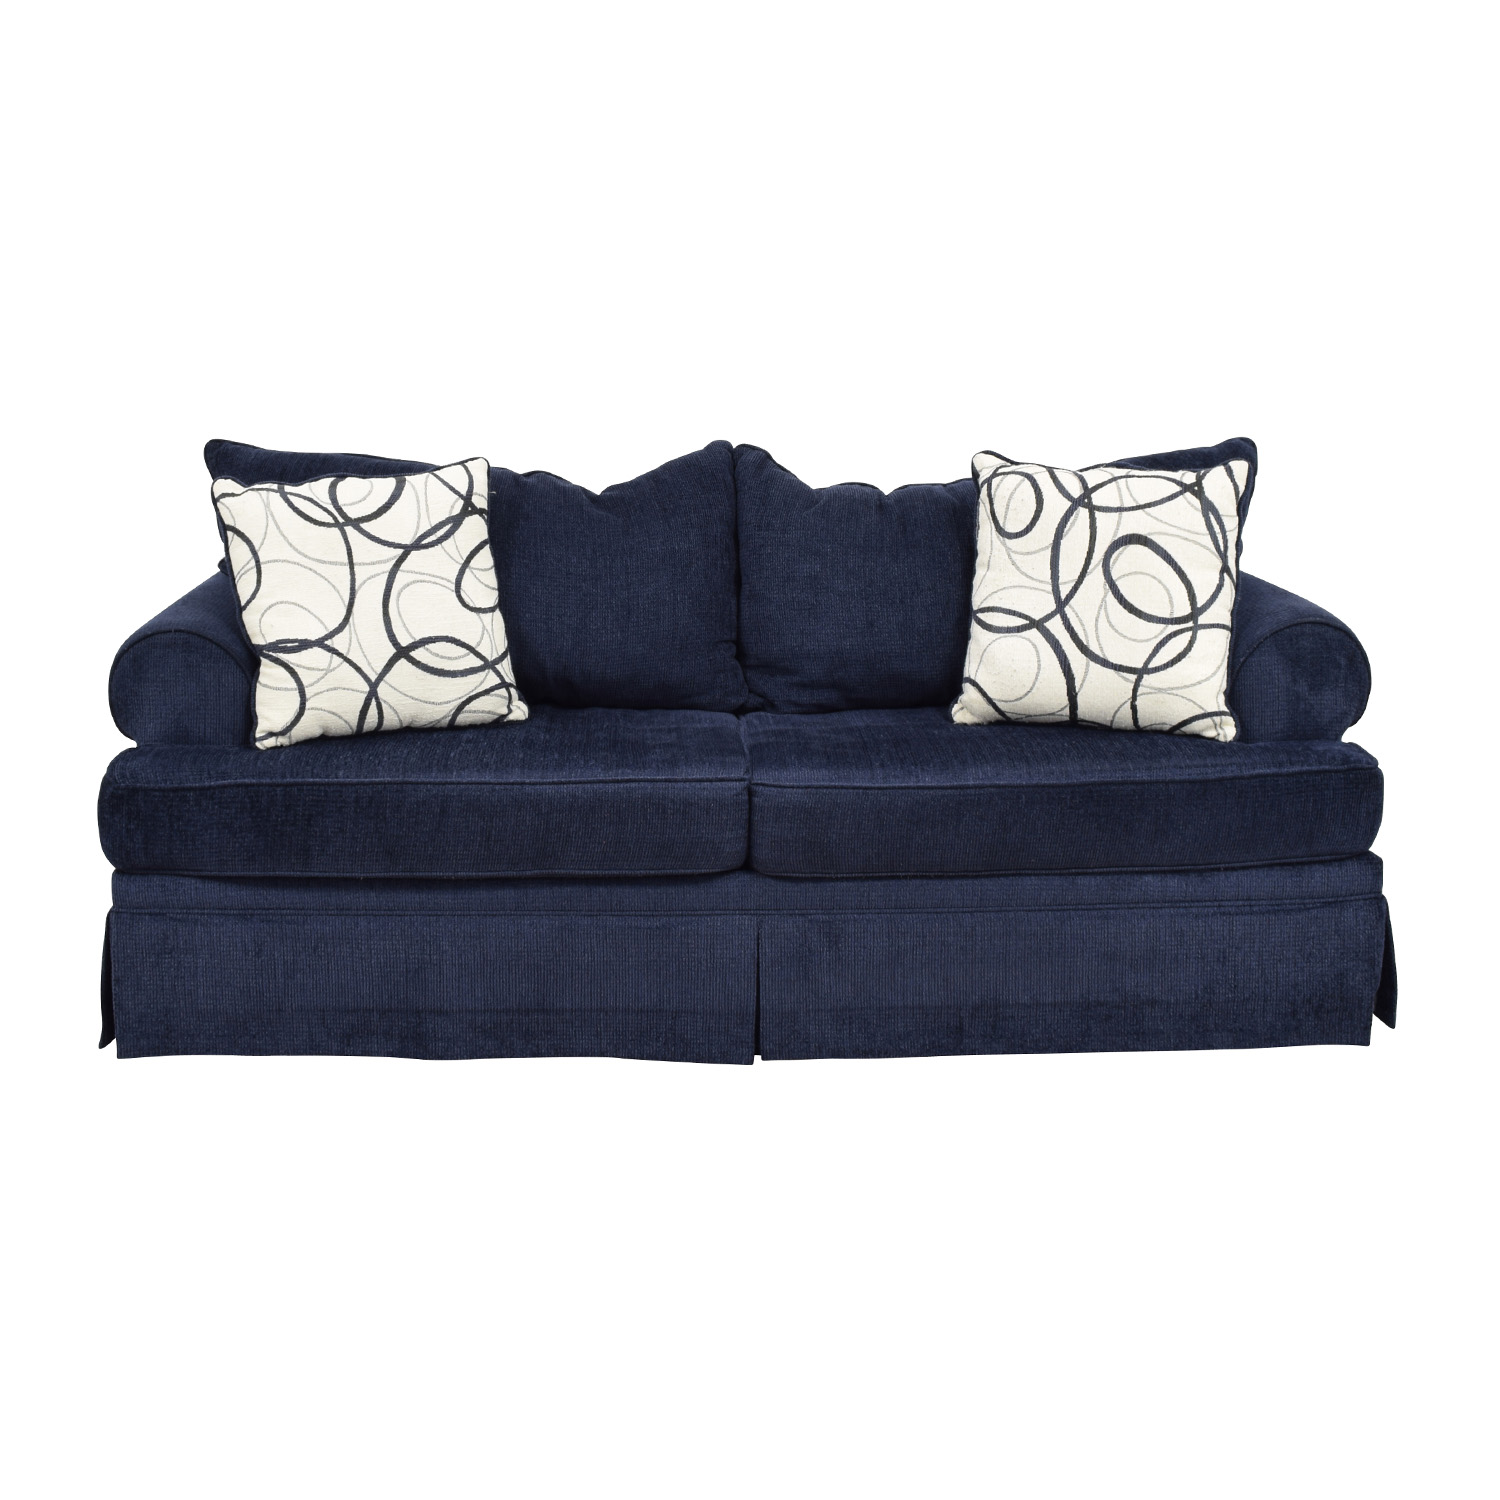 Bobs Furniture Bobs Furniture Deep Blue Sofa second hand